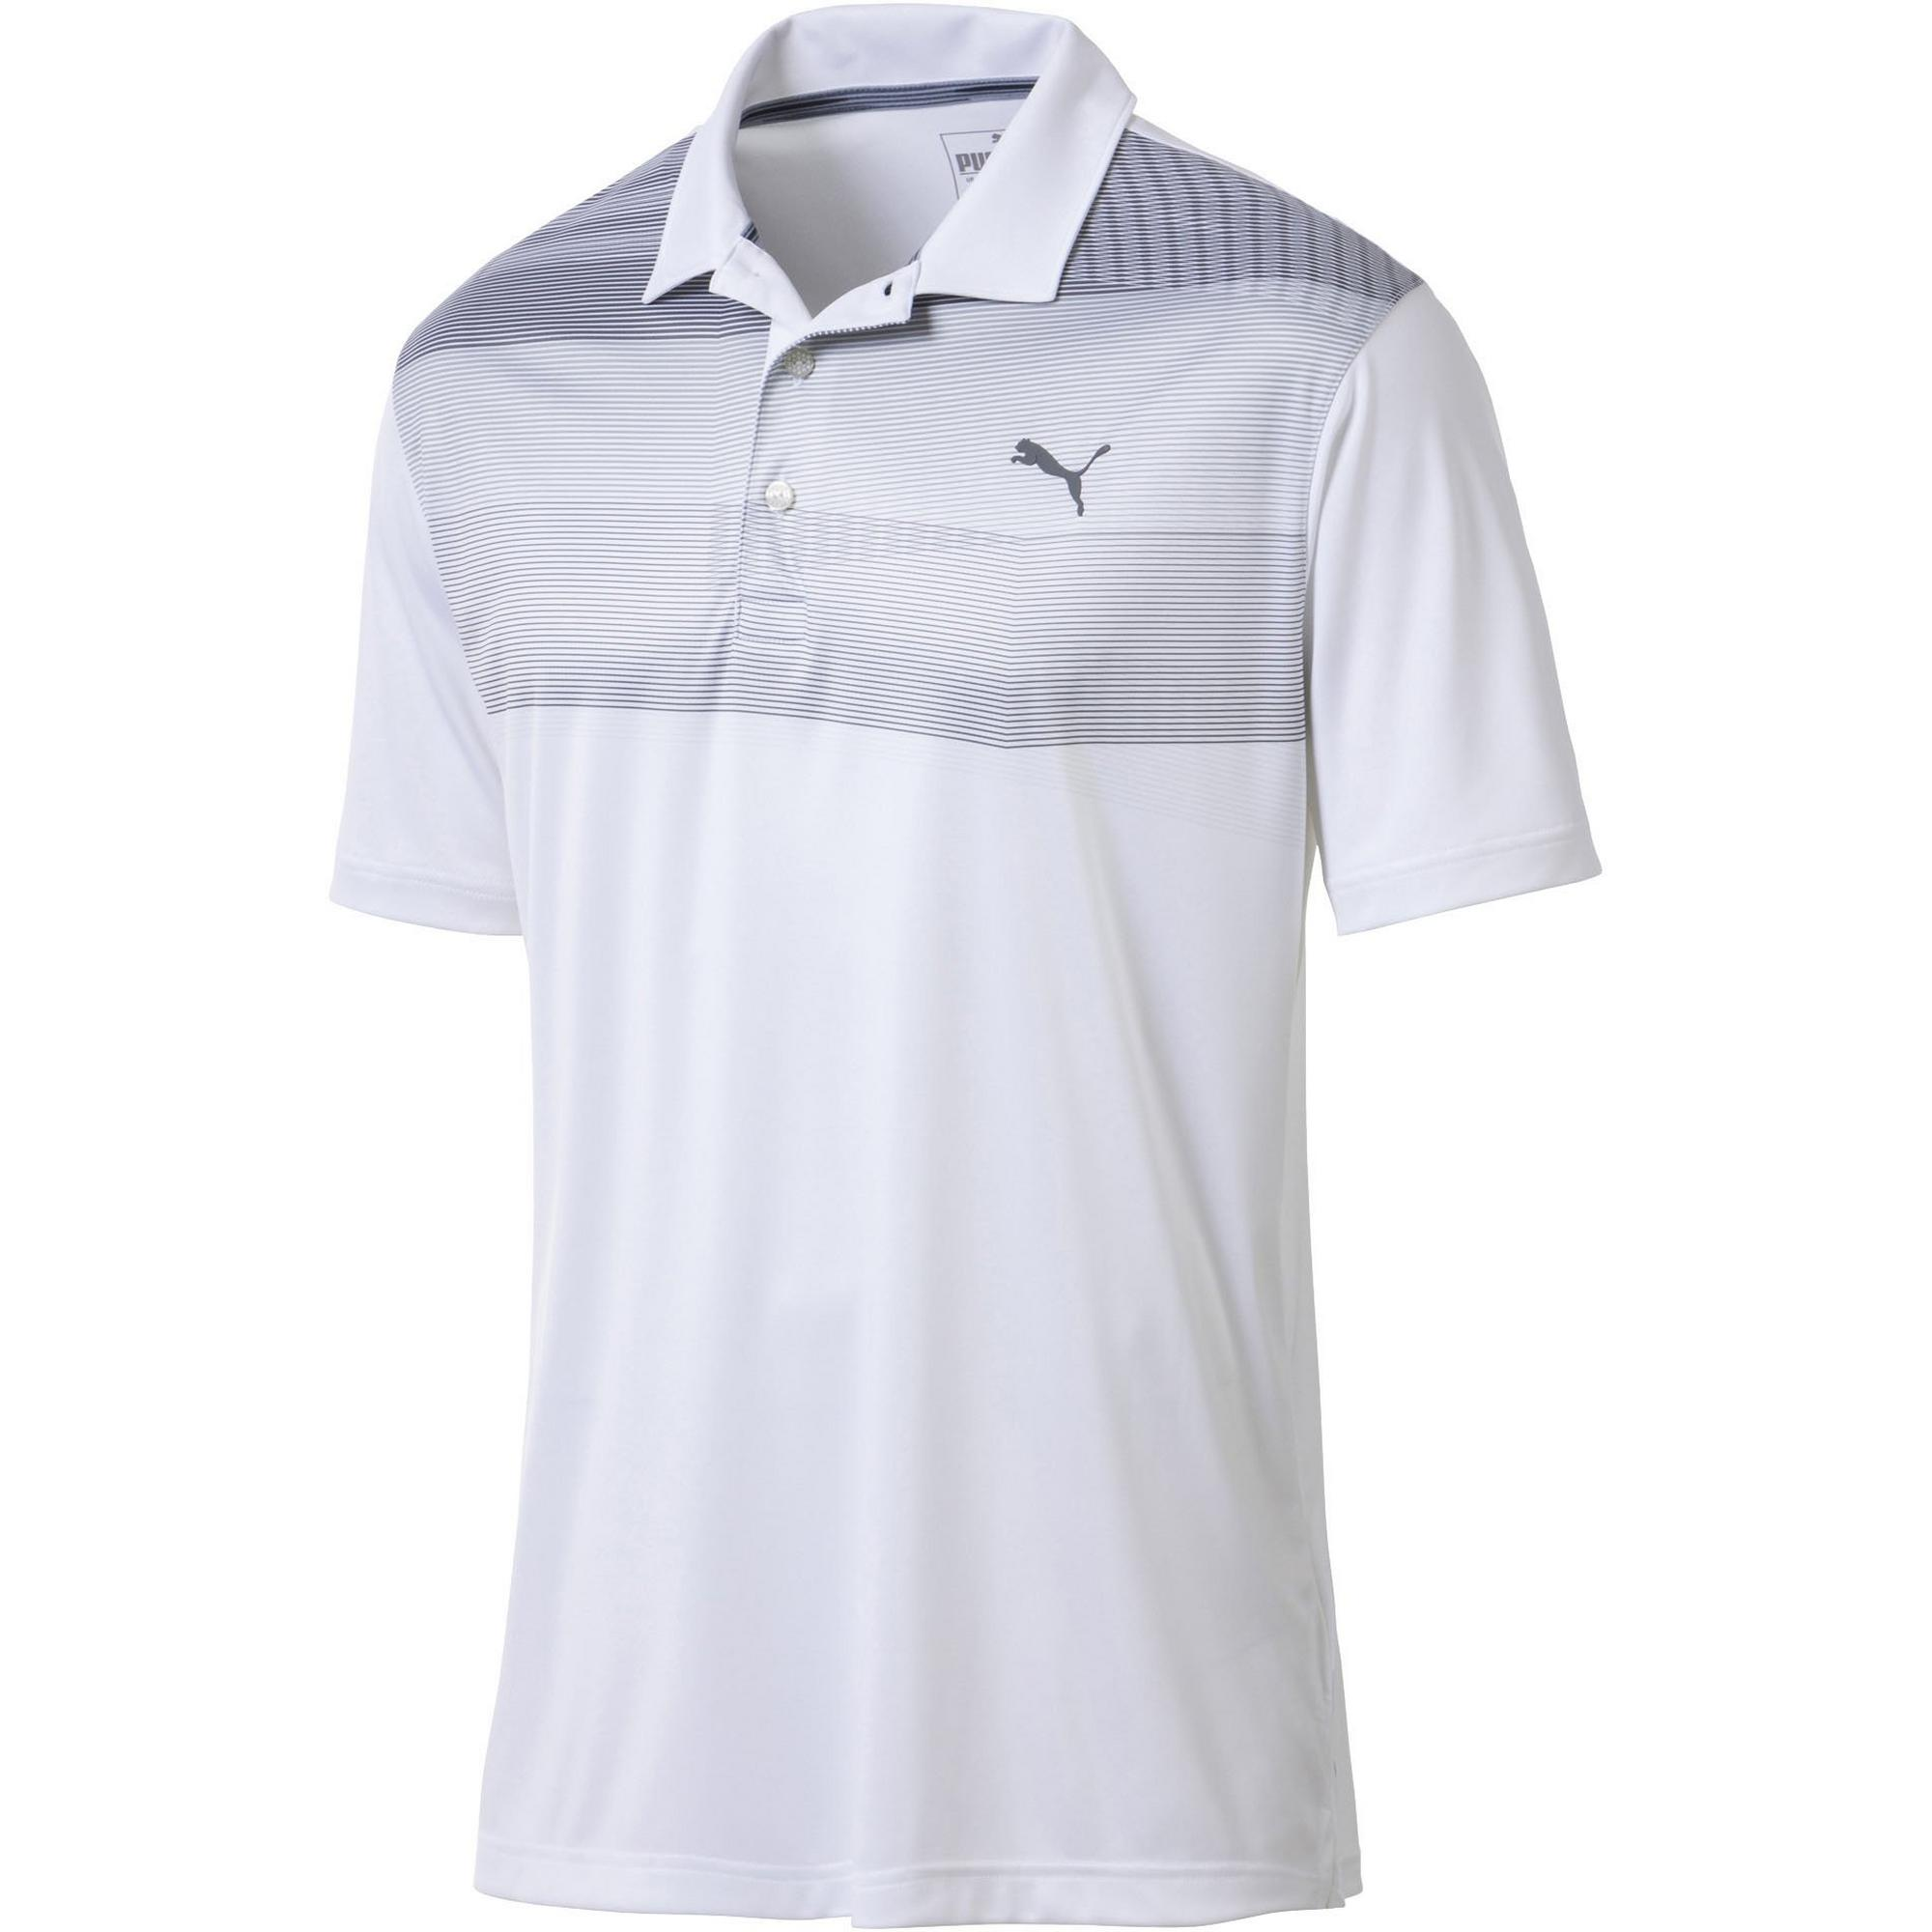 Men's PWRCOOL Refraction Short Sleeve Polo